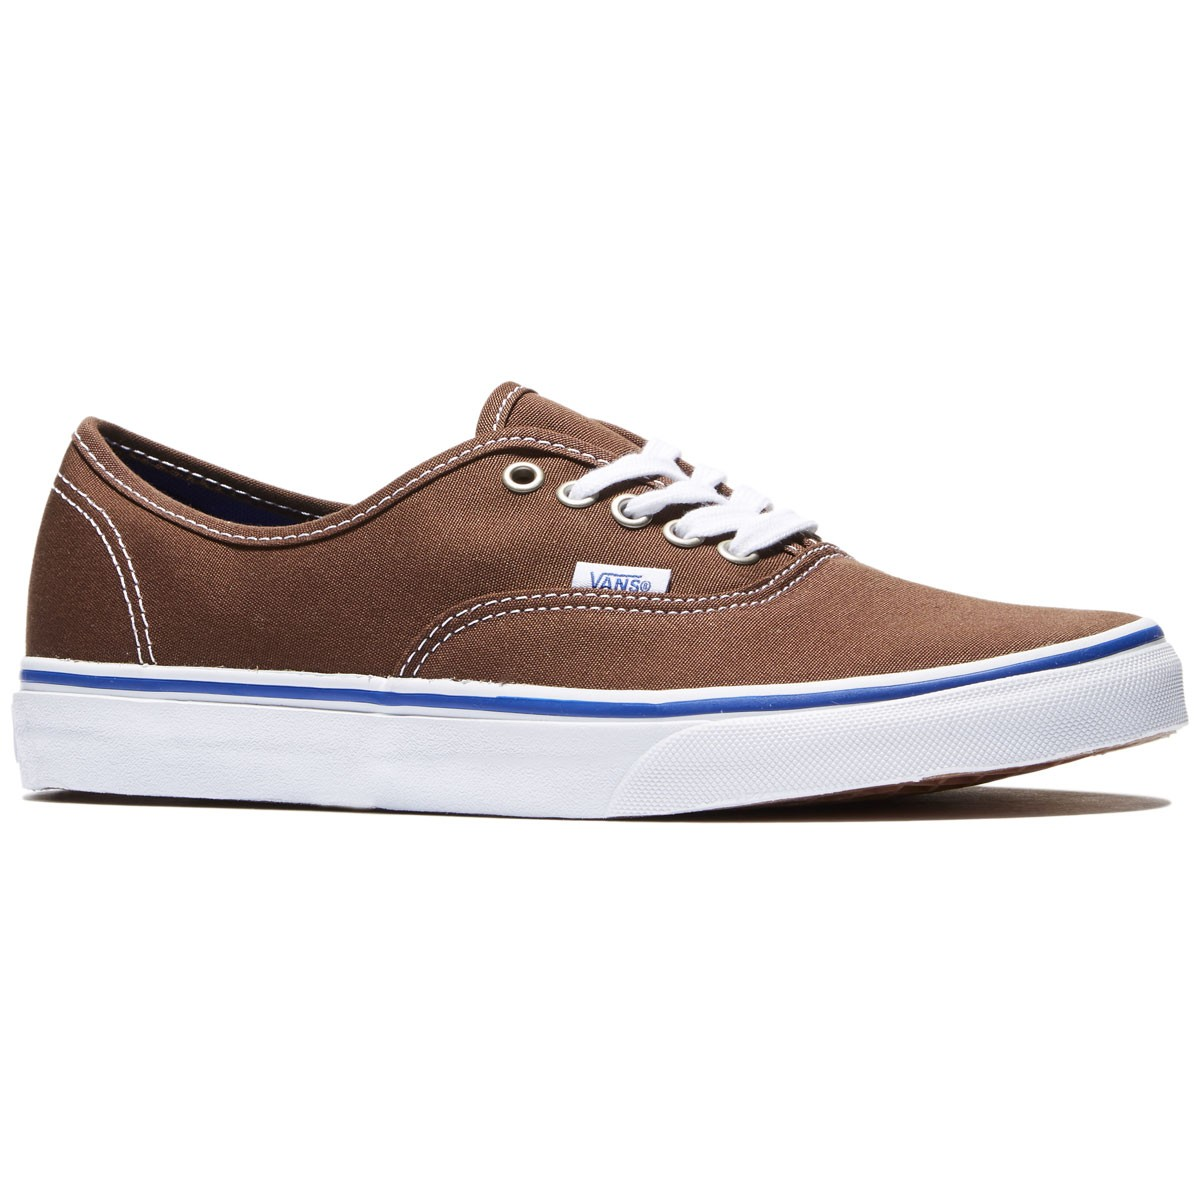 Vans Original Authentic Shoes - Chestnut/True White - 8.0